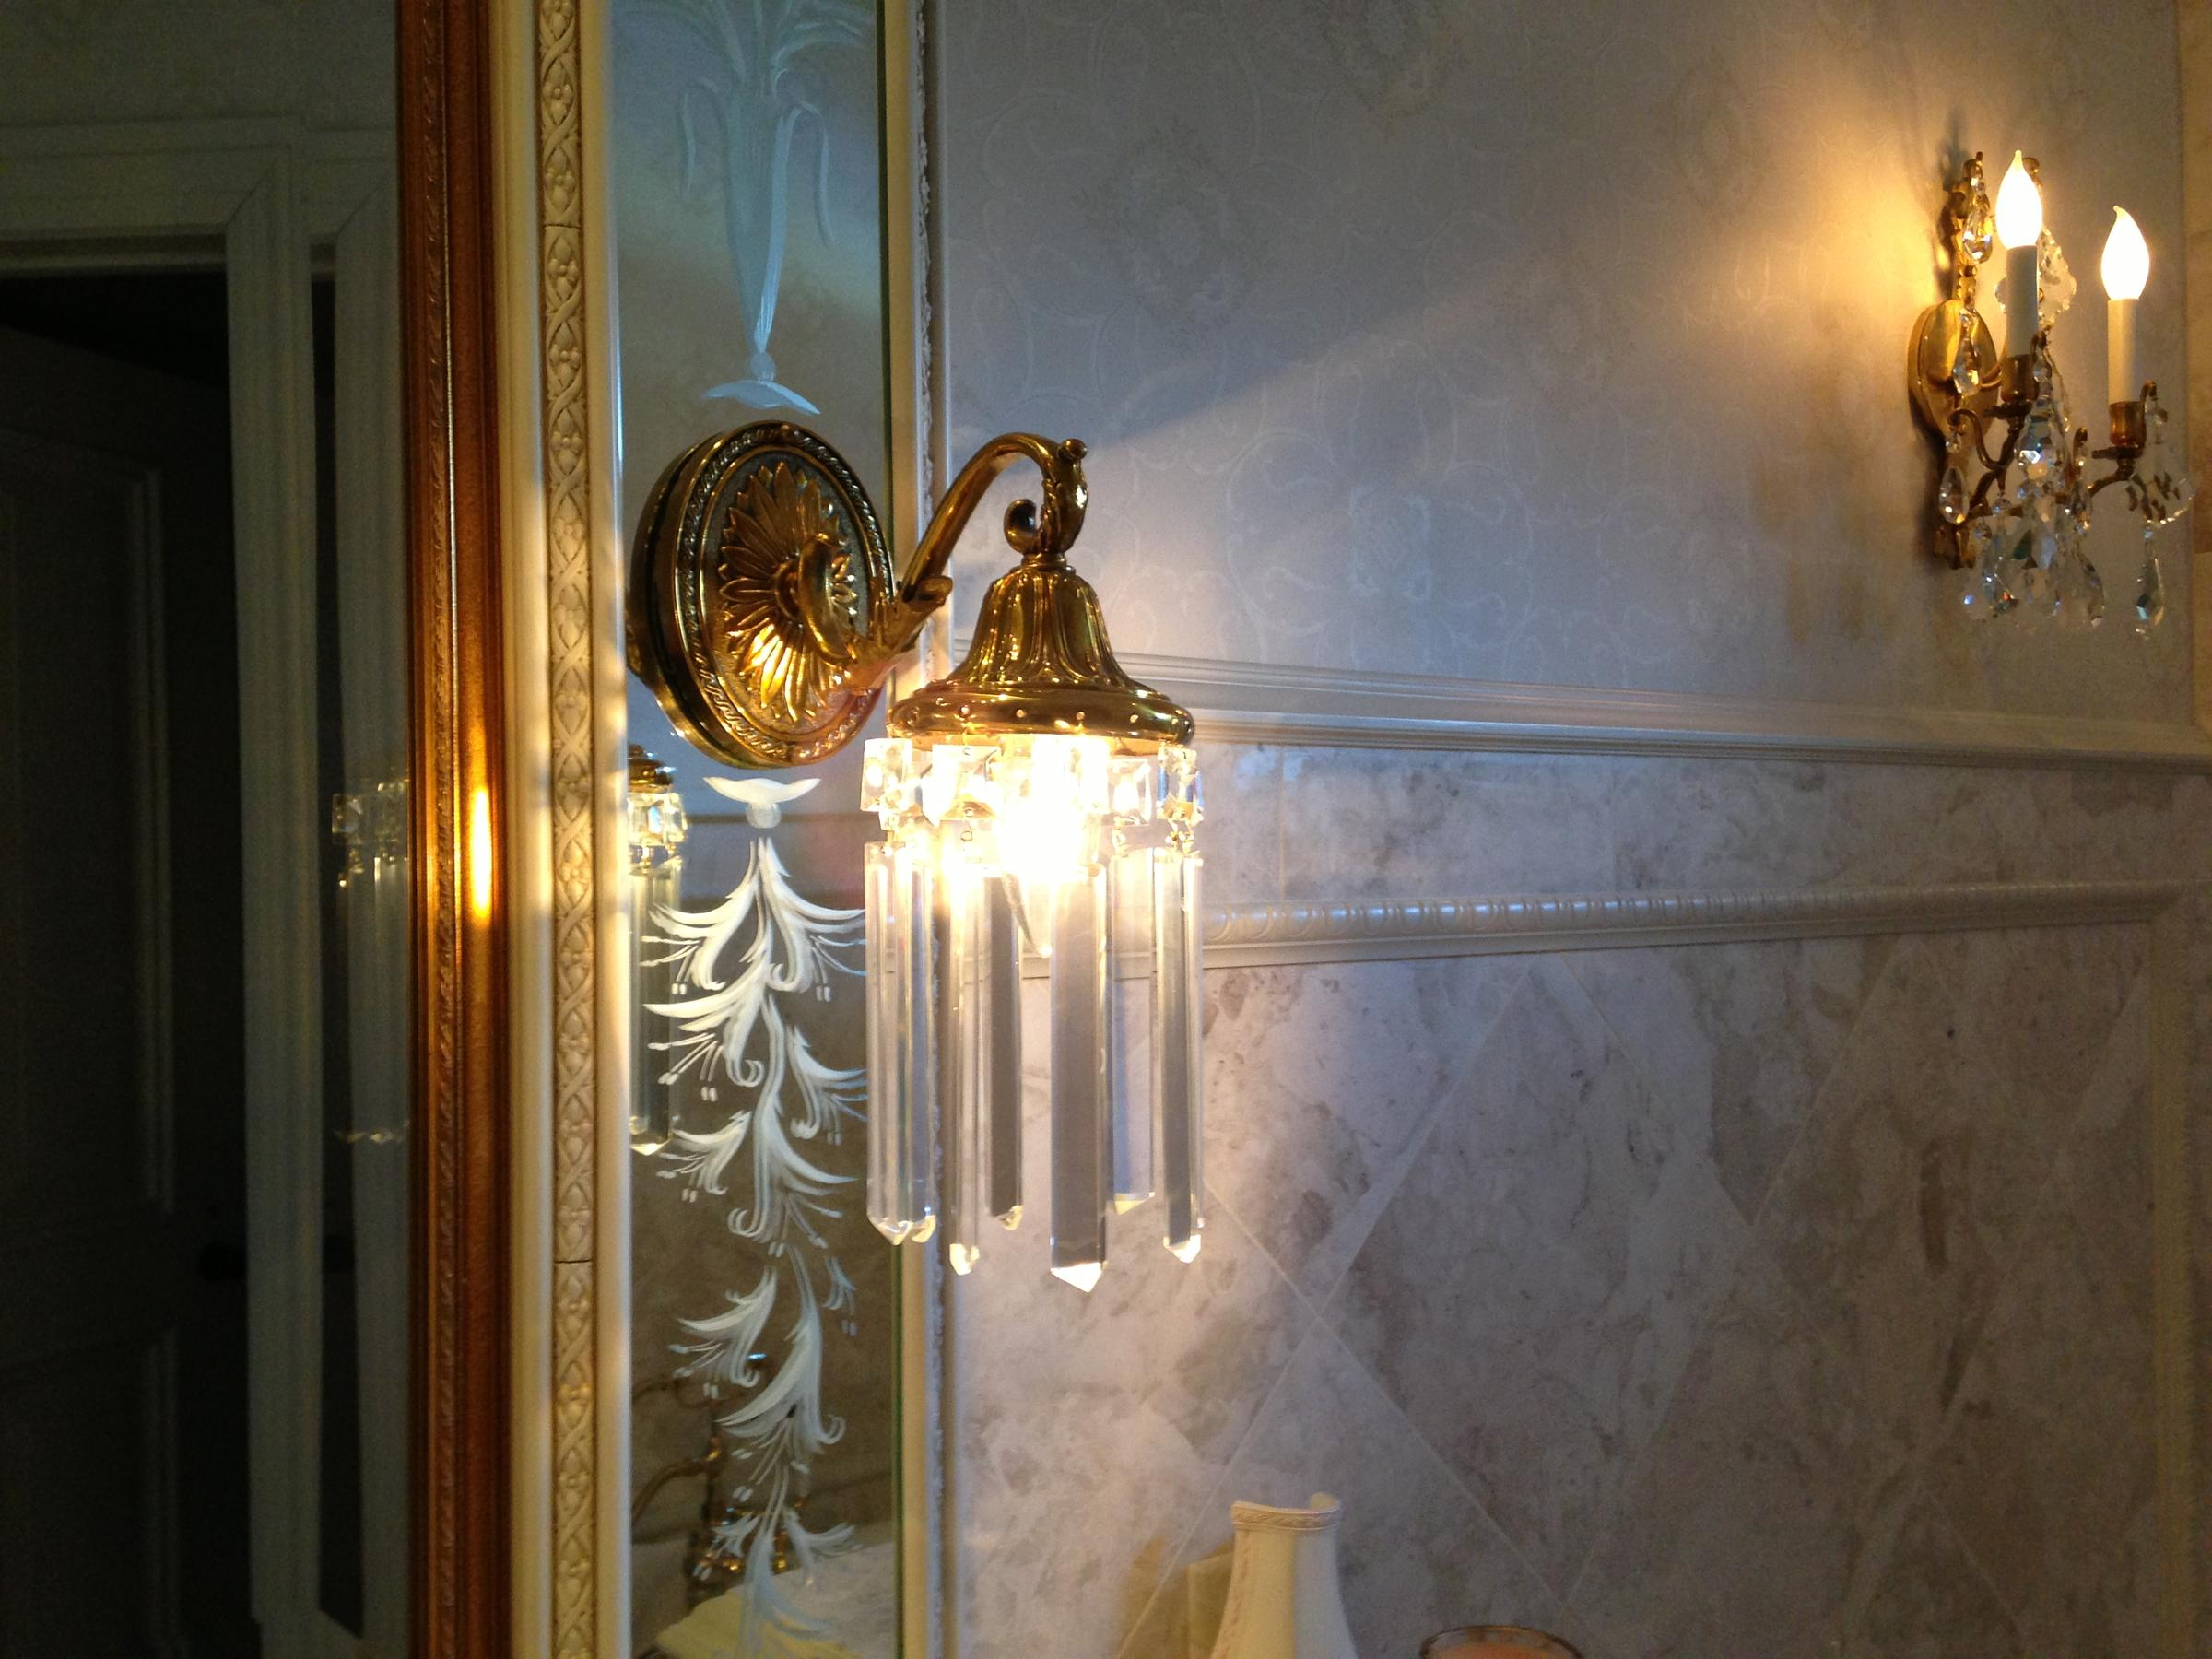 Citys past illuminated through historic lighting fixtures one of two early 1900s french hotel sconces restored in 1997 for use on either side of a bathroom vanity mirror procured for and installed in a local arubaitofo Image collections